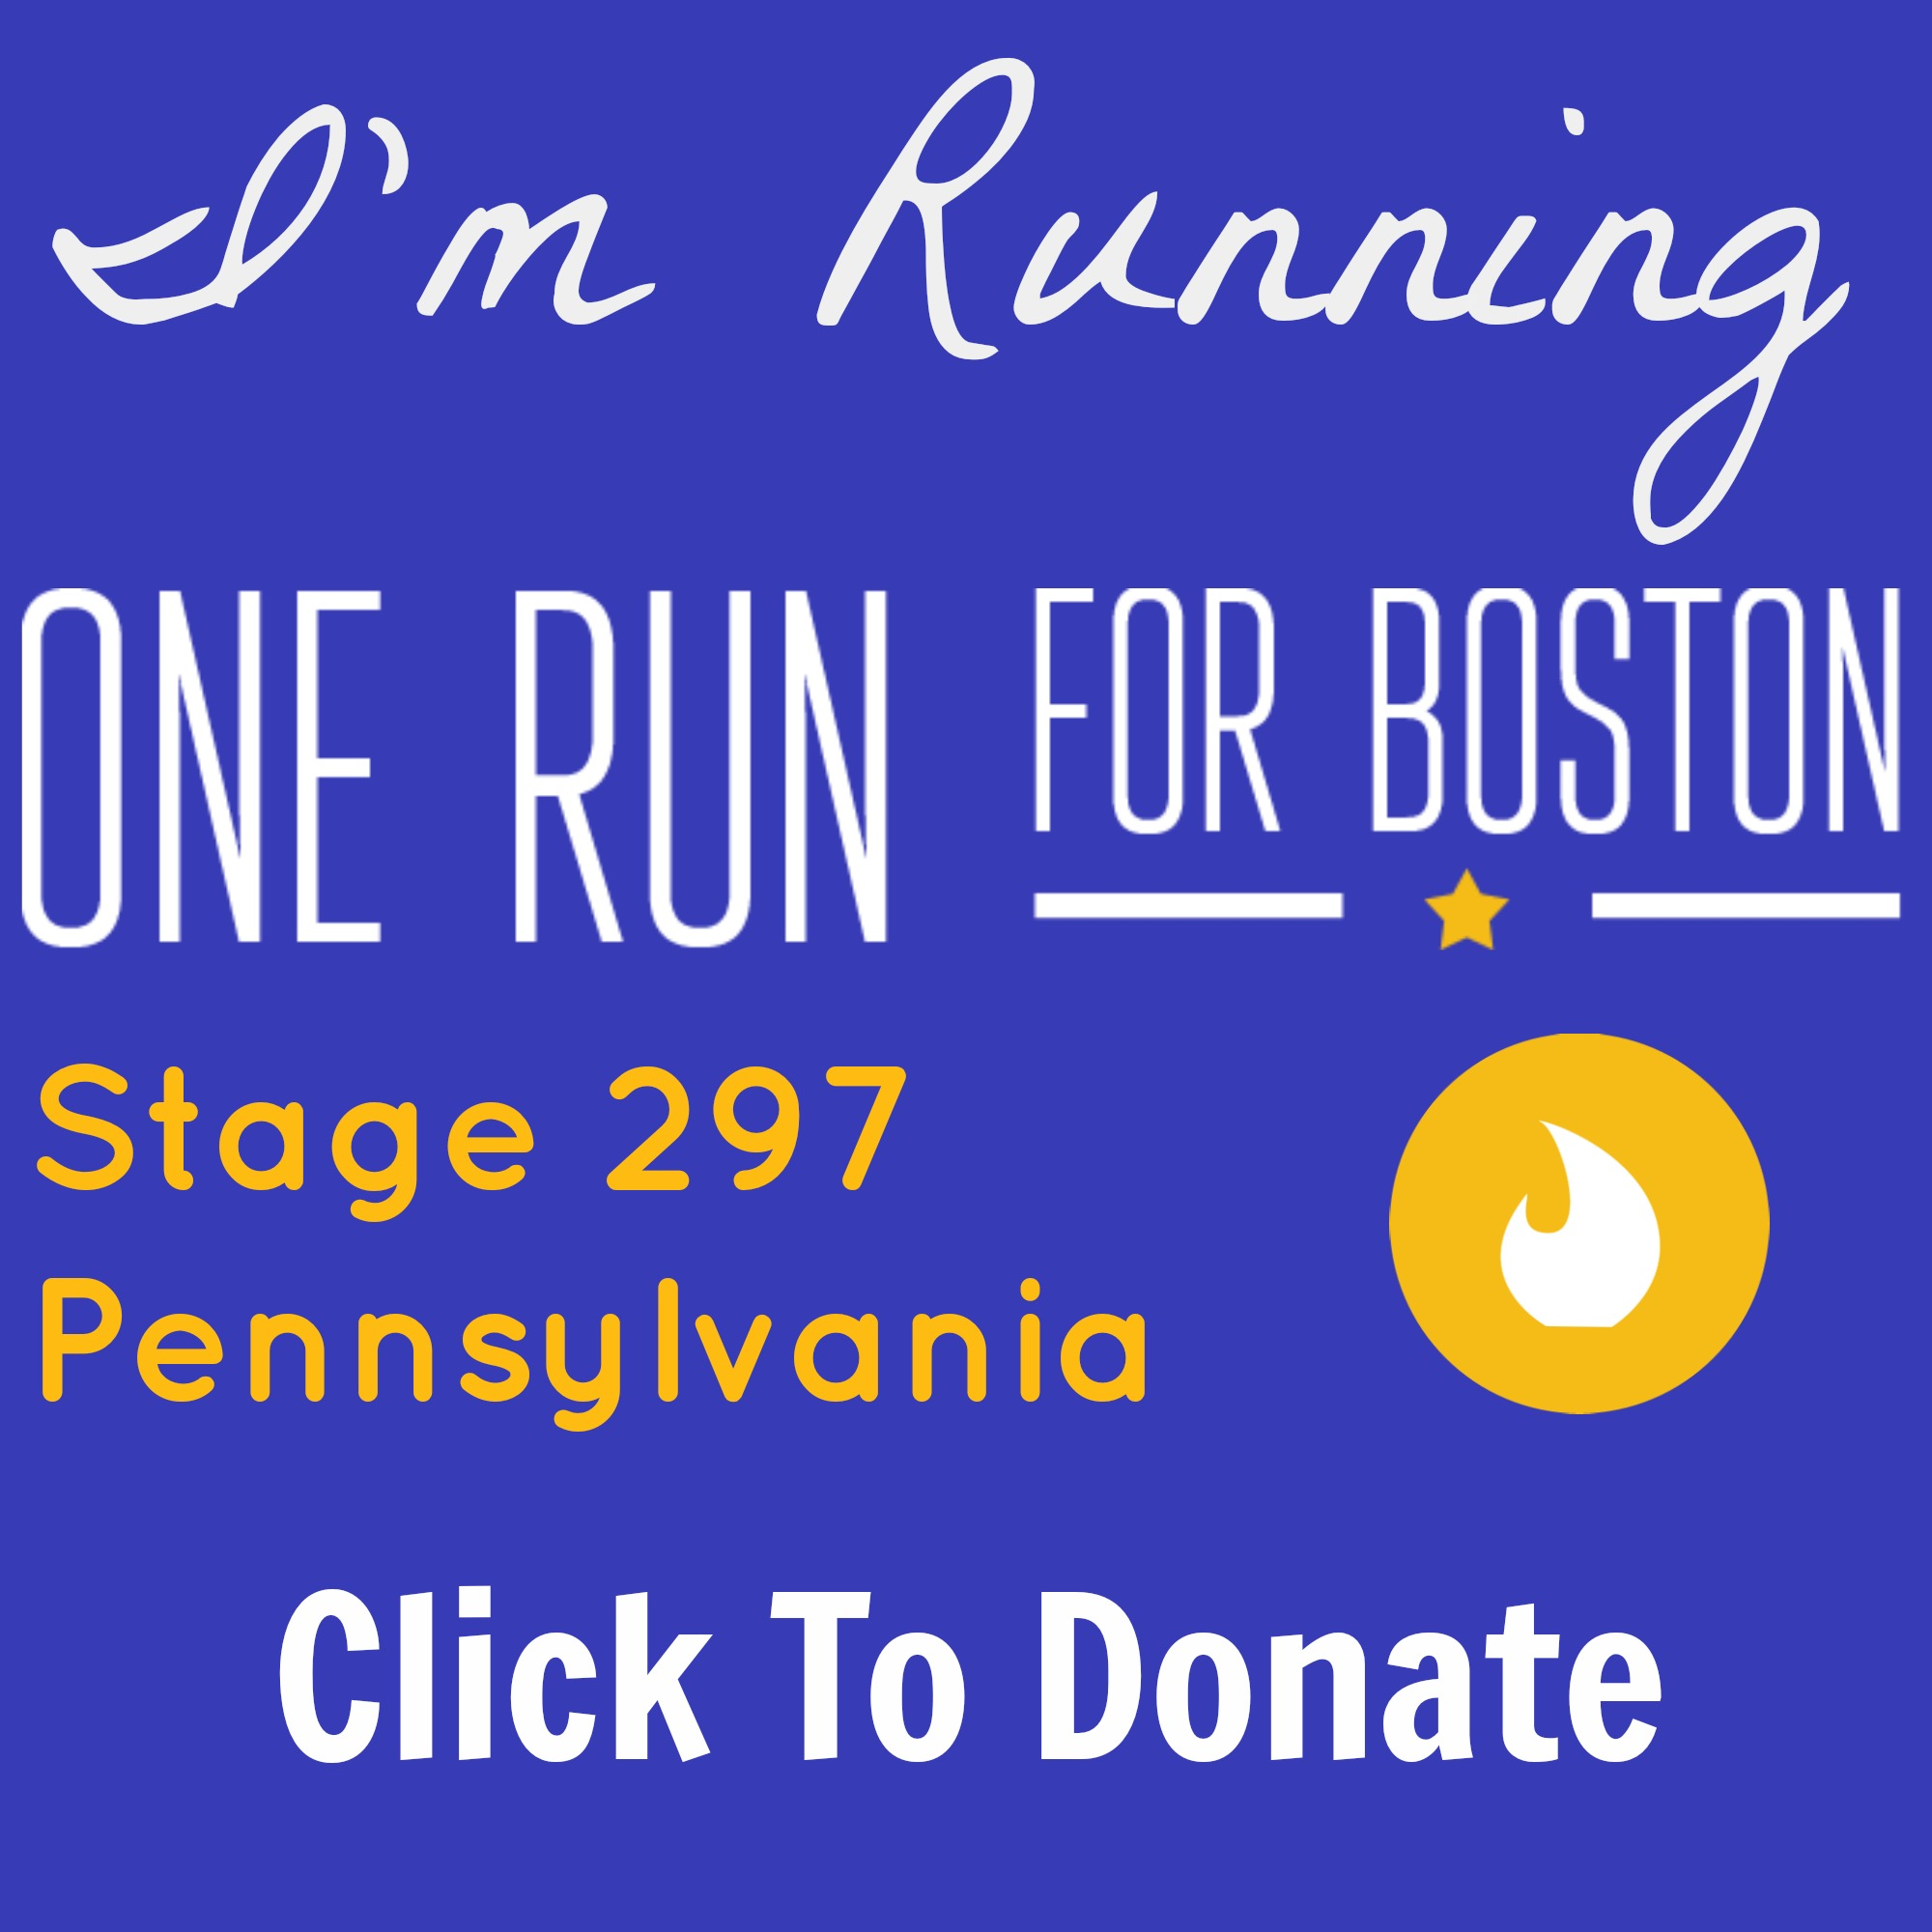 Donate to the One Run!